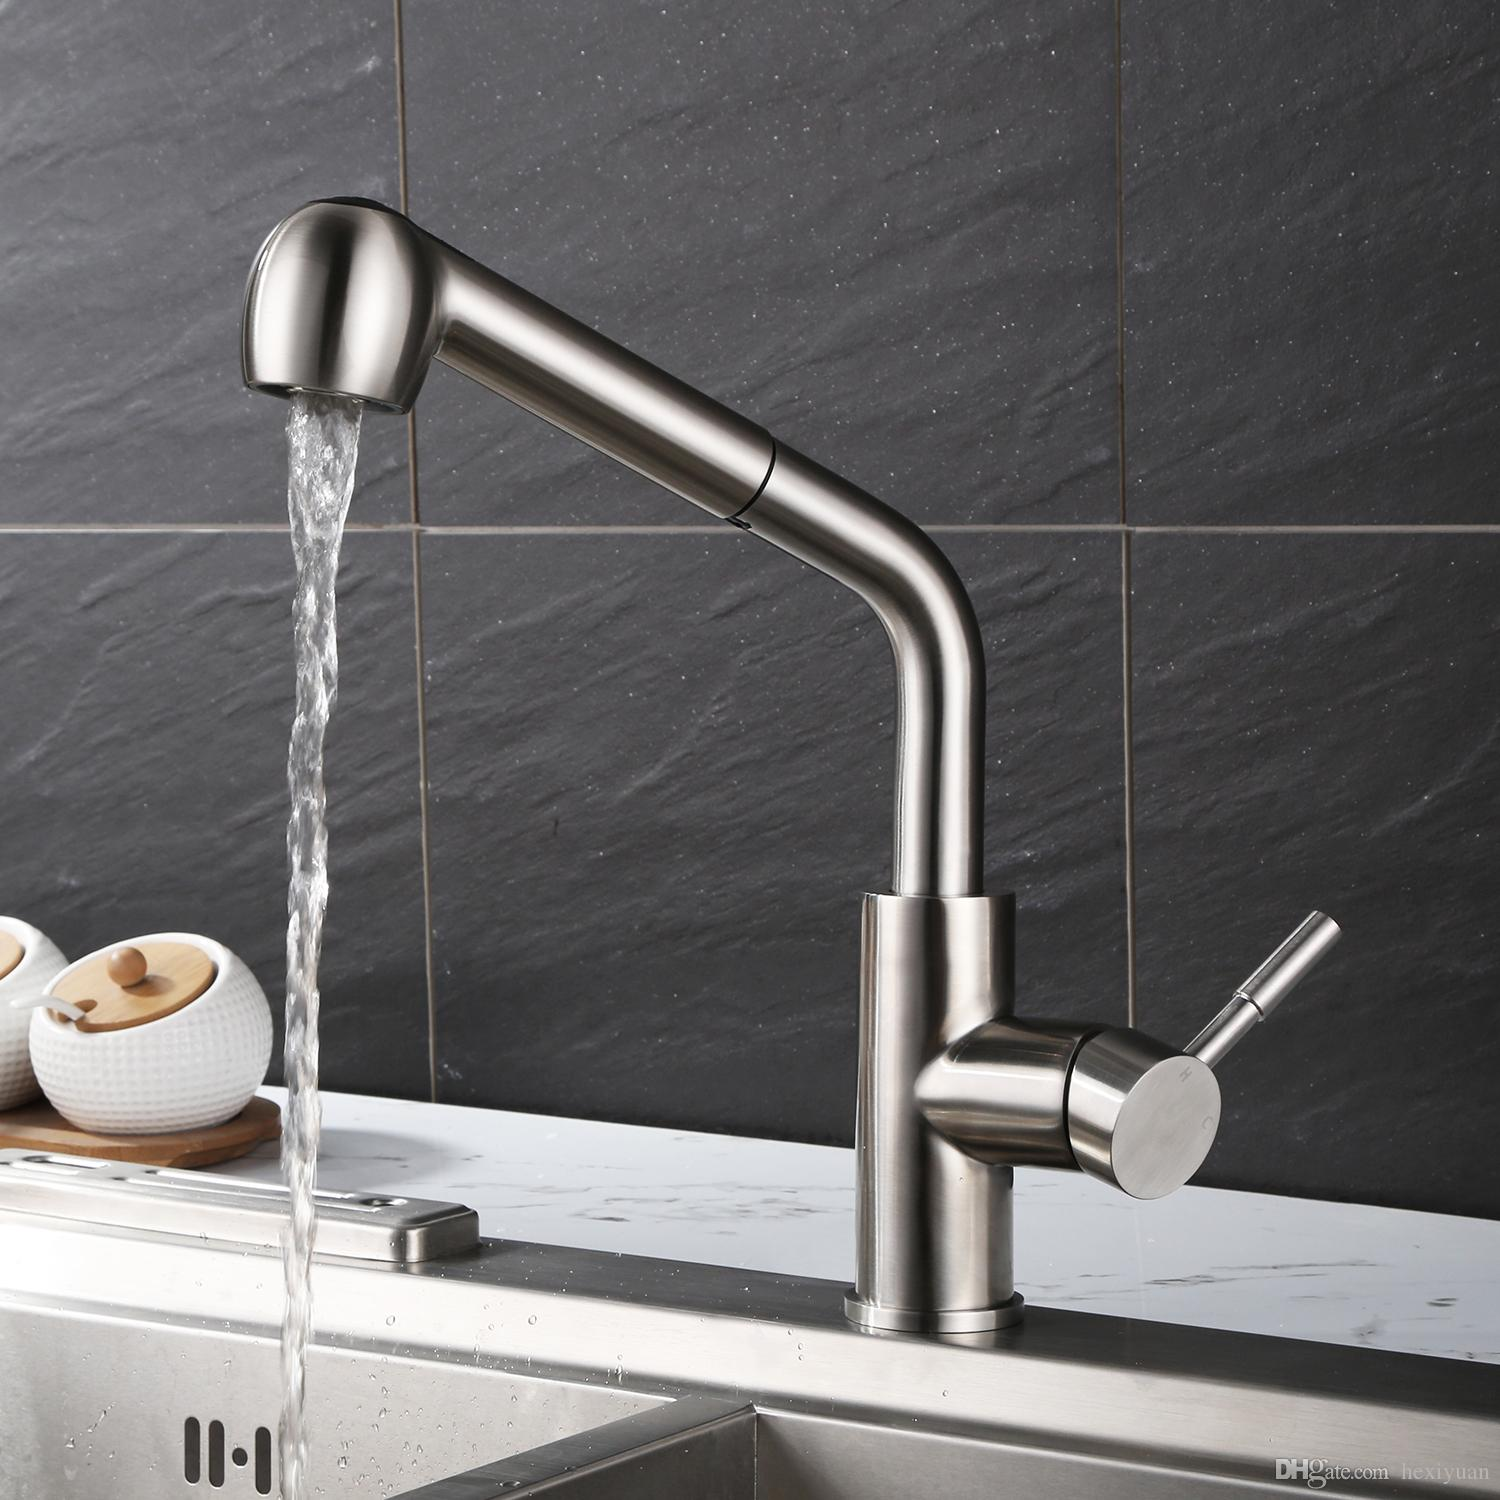 304 Stainless Steel Kitchen Faucet Draw Sink Sink Hot And Cold